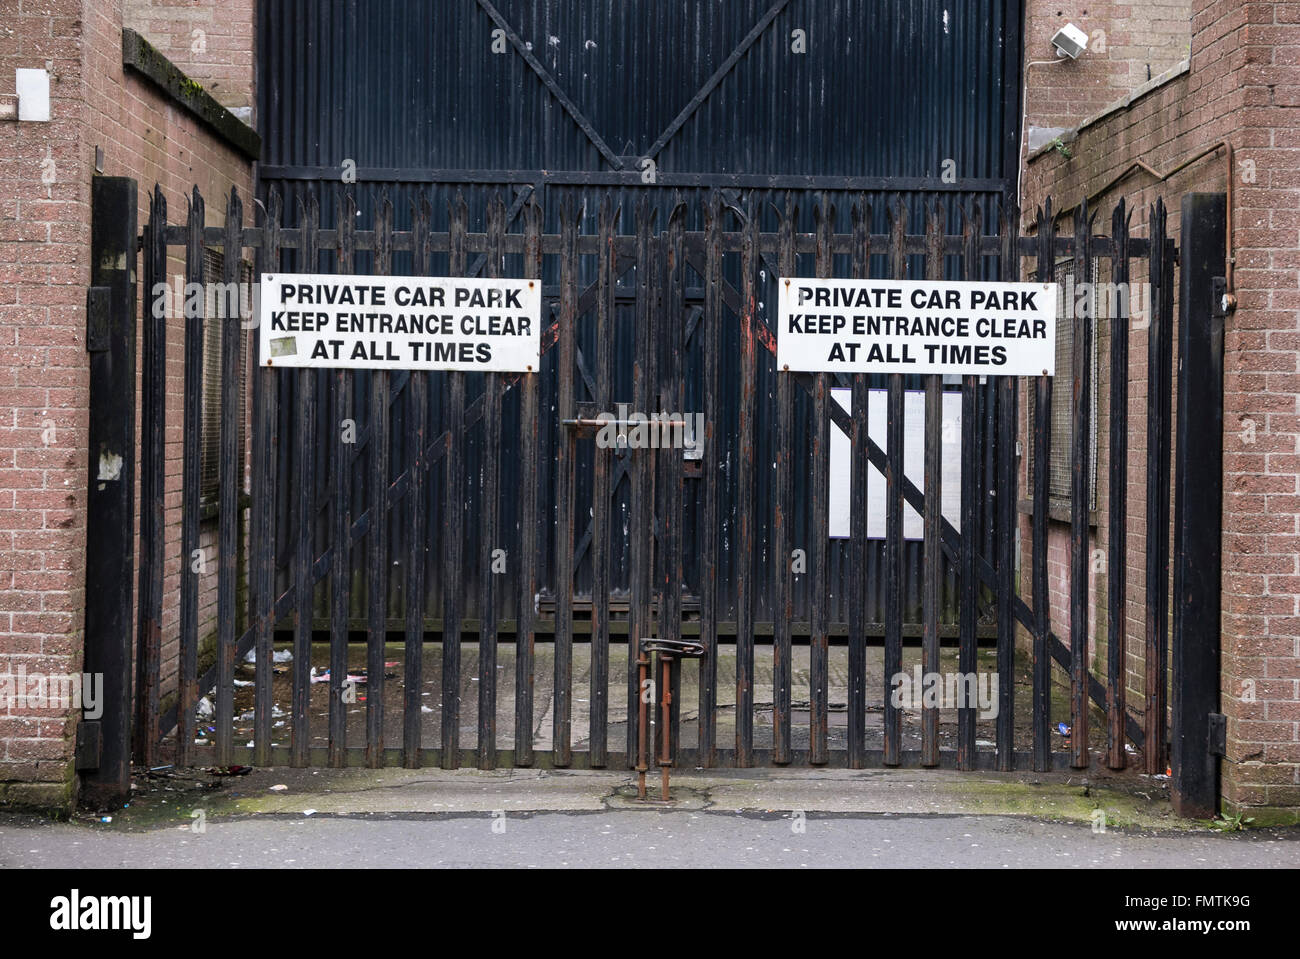 """Security Gates with signs saying """"Private car park. Keep entrance clear at all times"""". Stock Photo"""